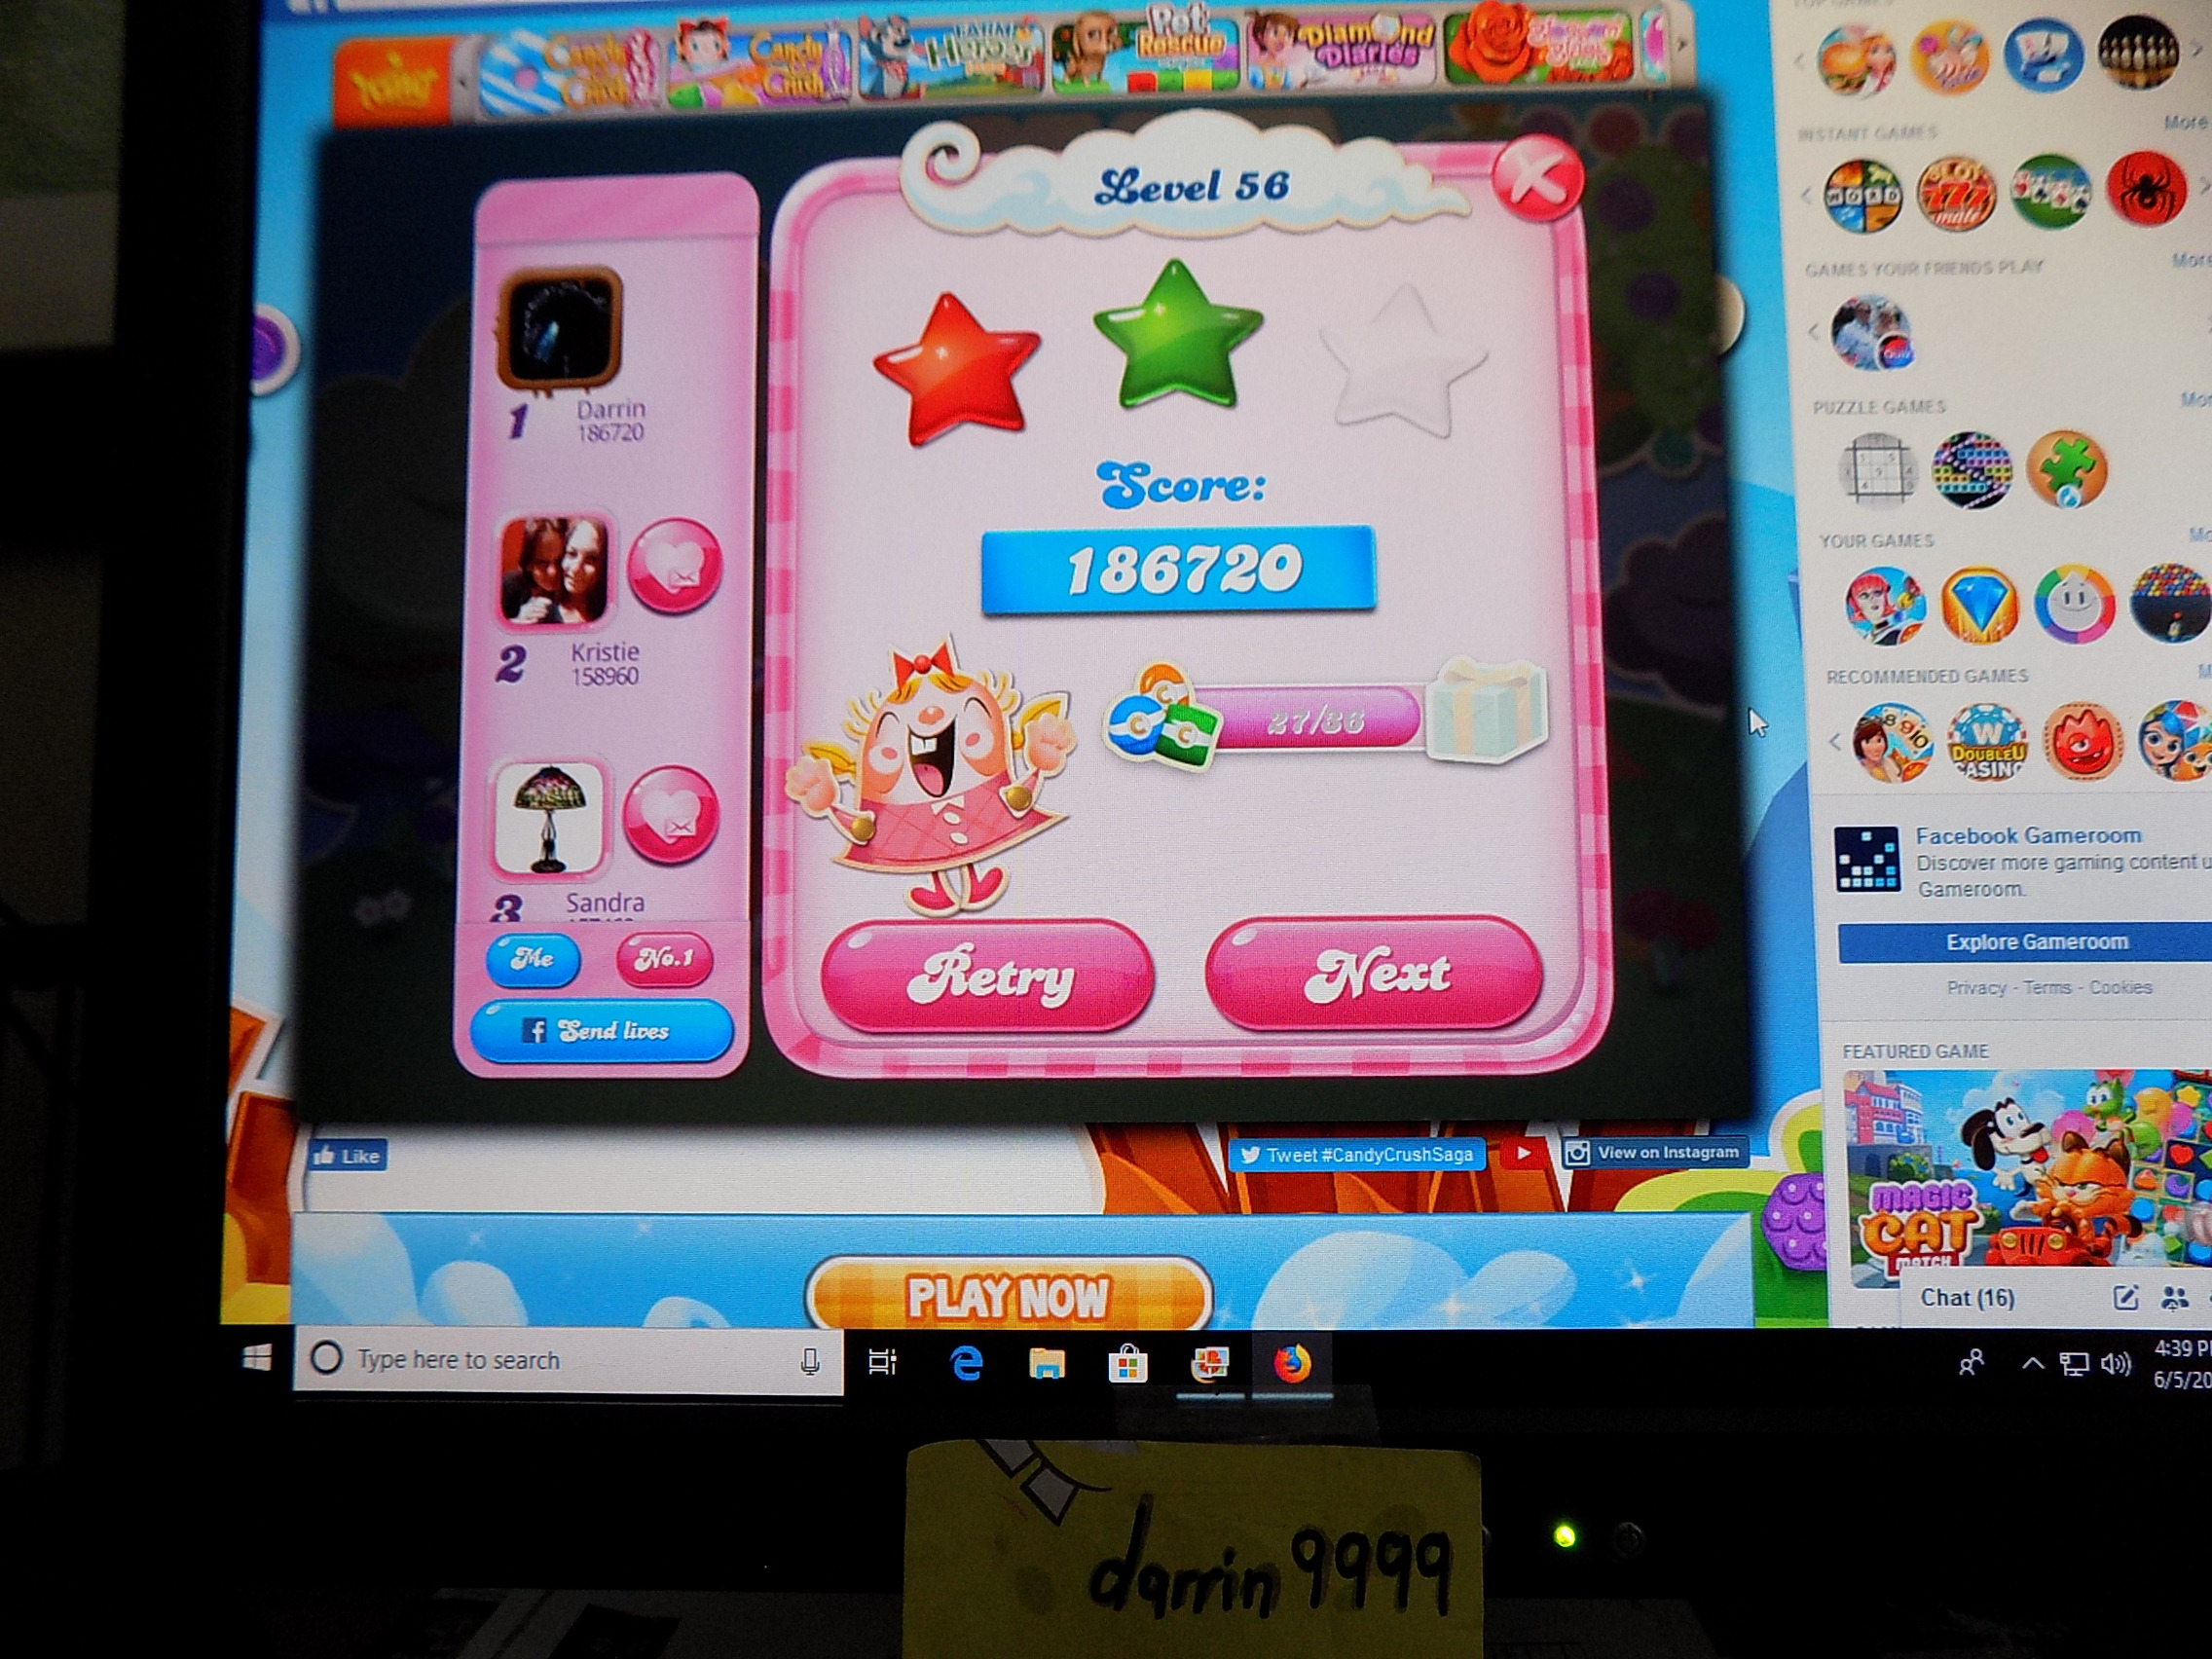 darrin9999: Candy Crush Saga: Level 056 (Web) 186,720 points on 2019-06-12 16:03:55